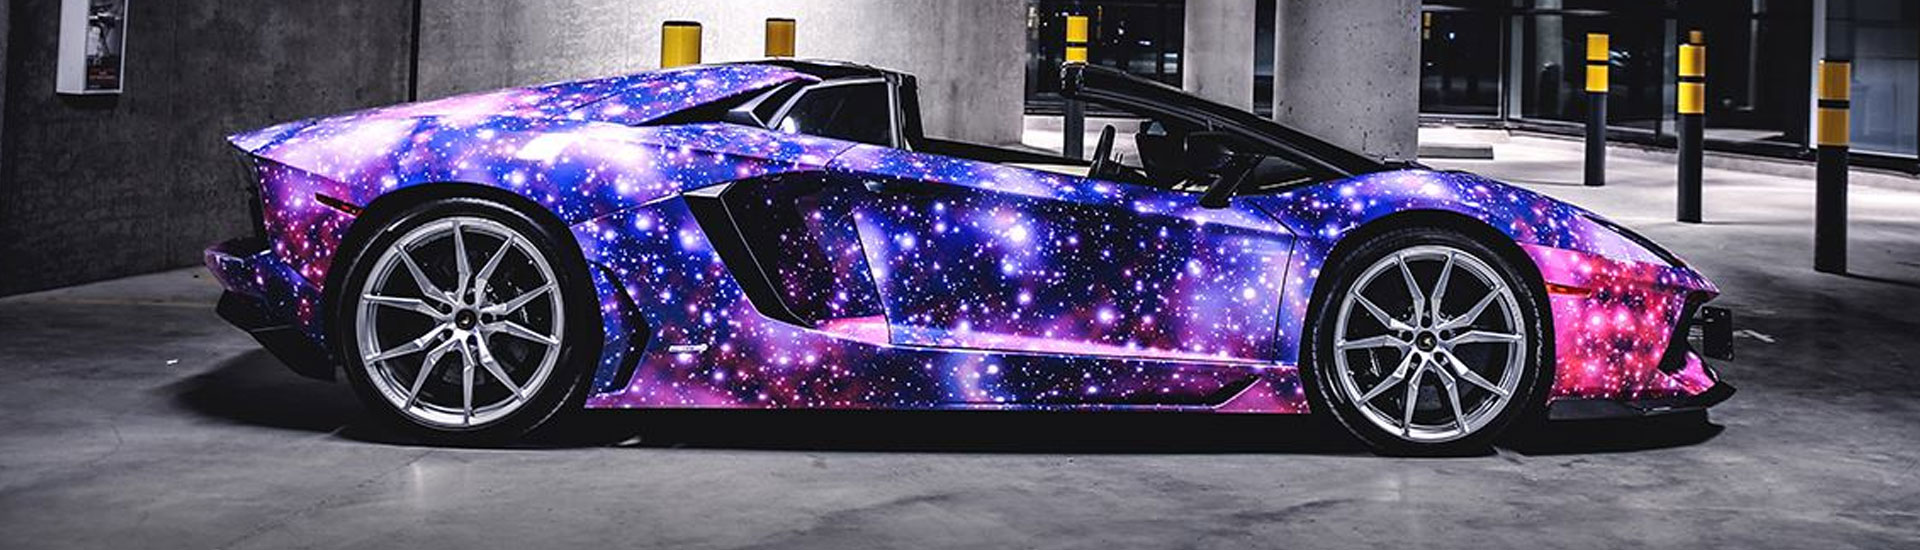 Galaxy Vinyl Wrap Galaxy Car Wraps